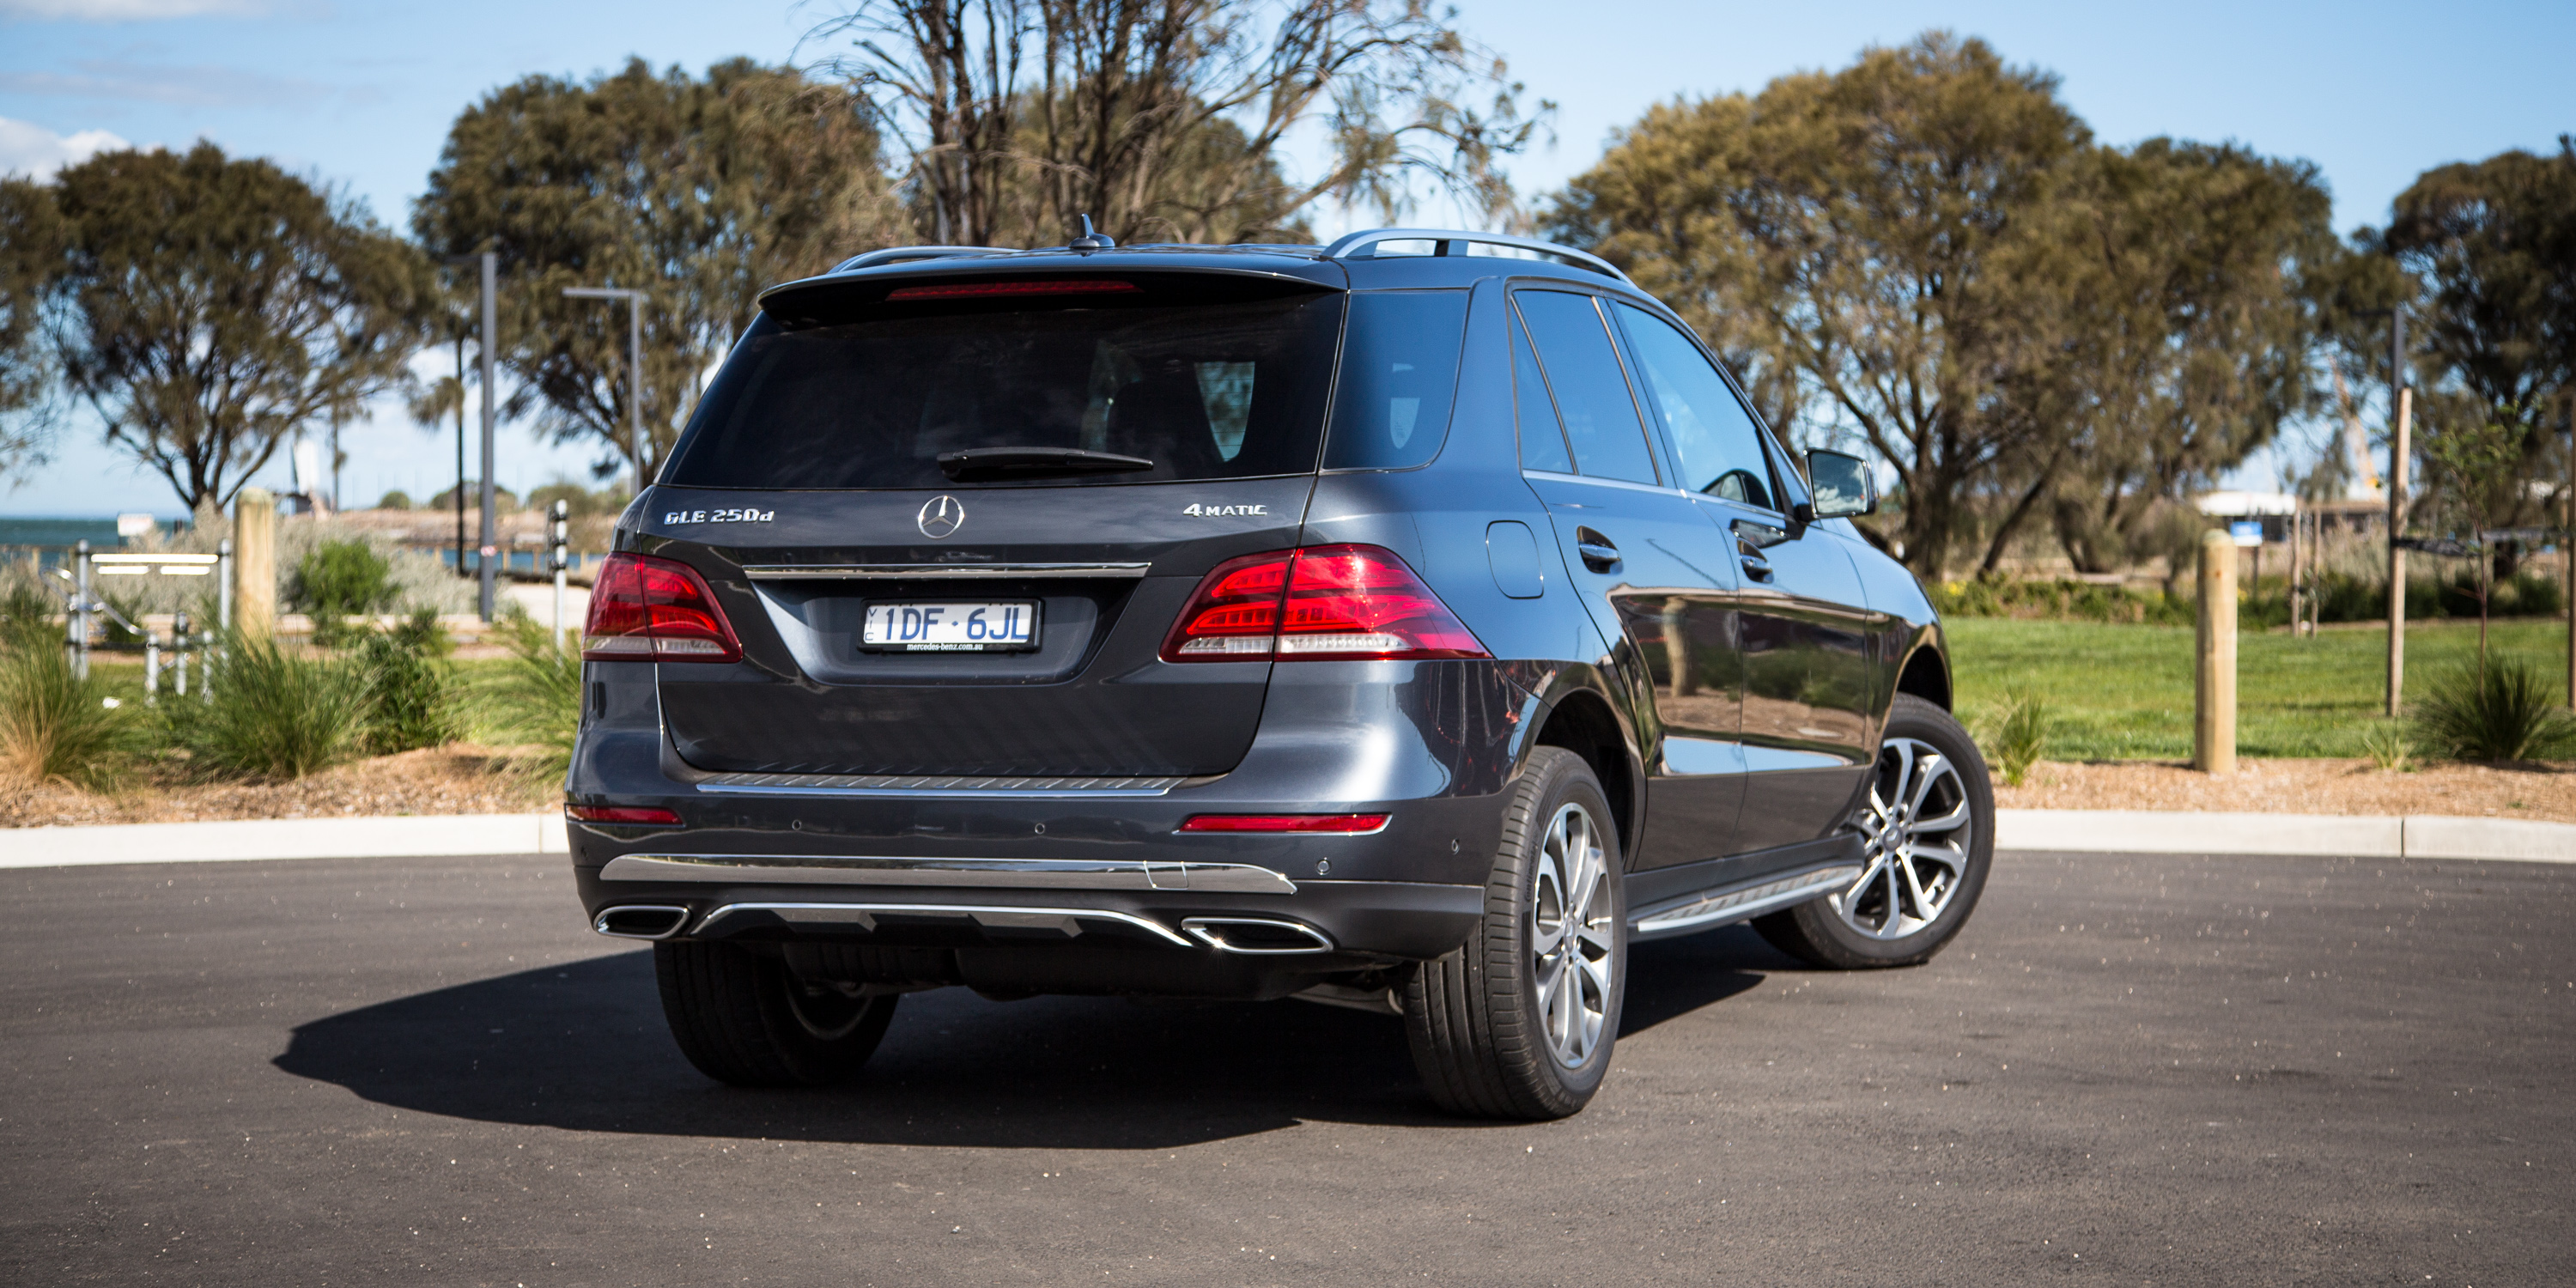 2016 Mercedes-Benz GLE 250d Review   CarAdvice